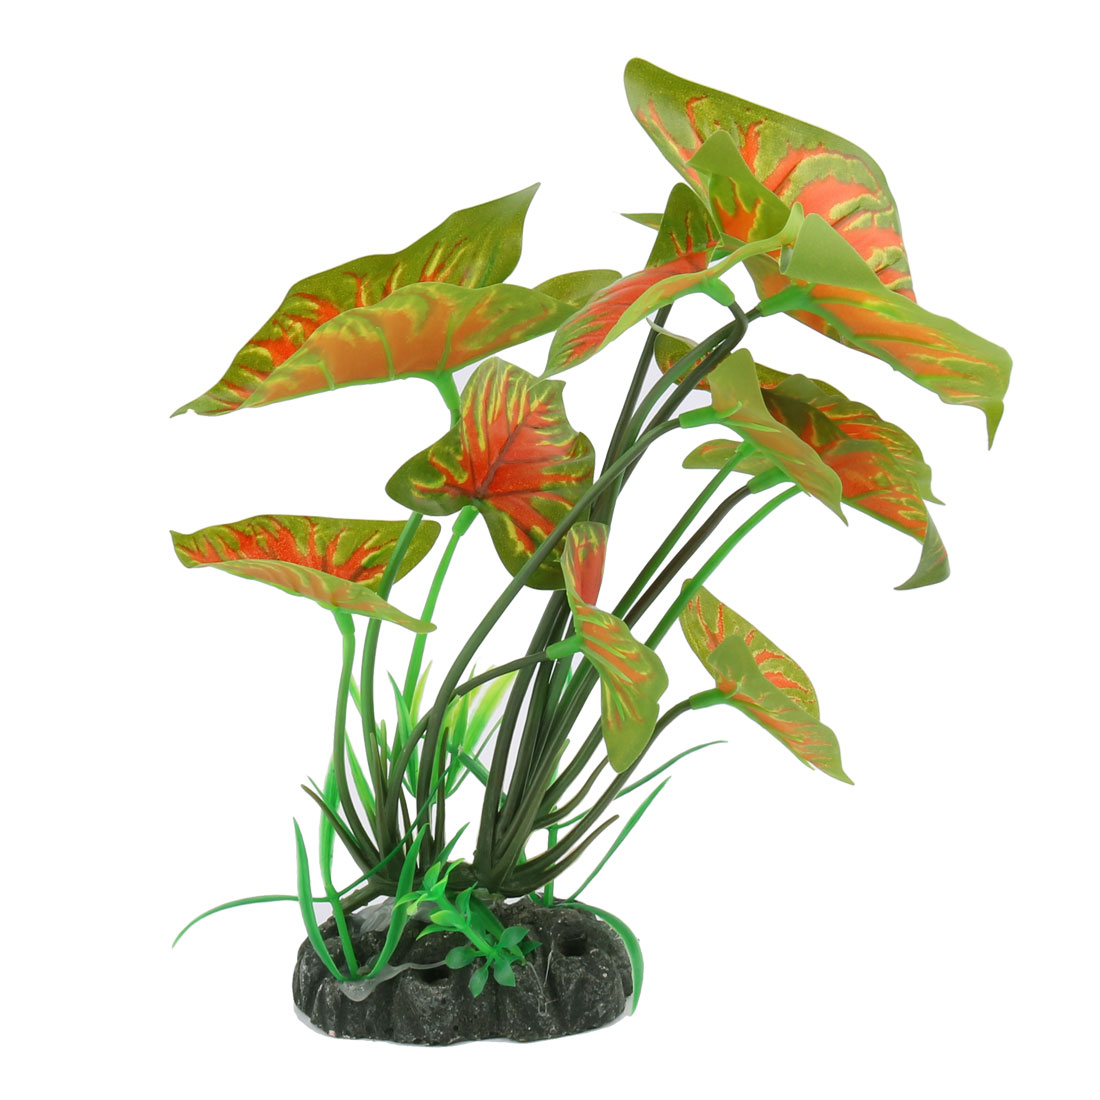 Artificial Decor Vivid Taro Green and Orange Leaves Fish Tank Aquarium Plant